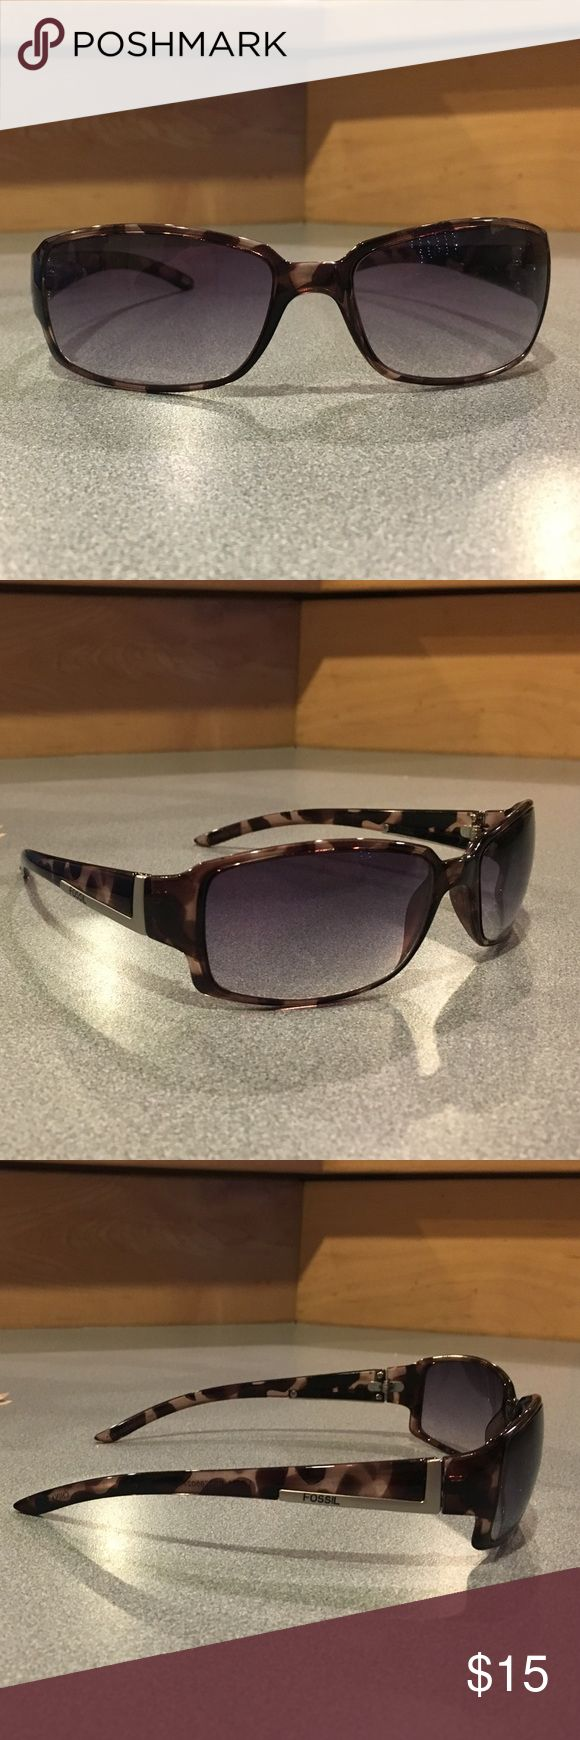 Women's Fossil Sunglasses In great condition, just never wear them. Brown tortoise color with slight matte silver accent on the sides. Fossil Accessories Sunglasses